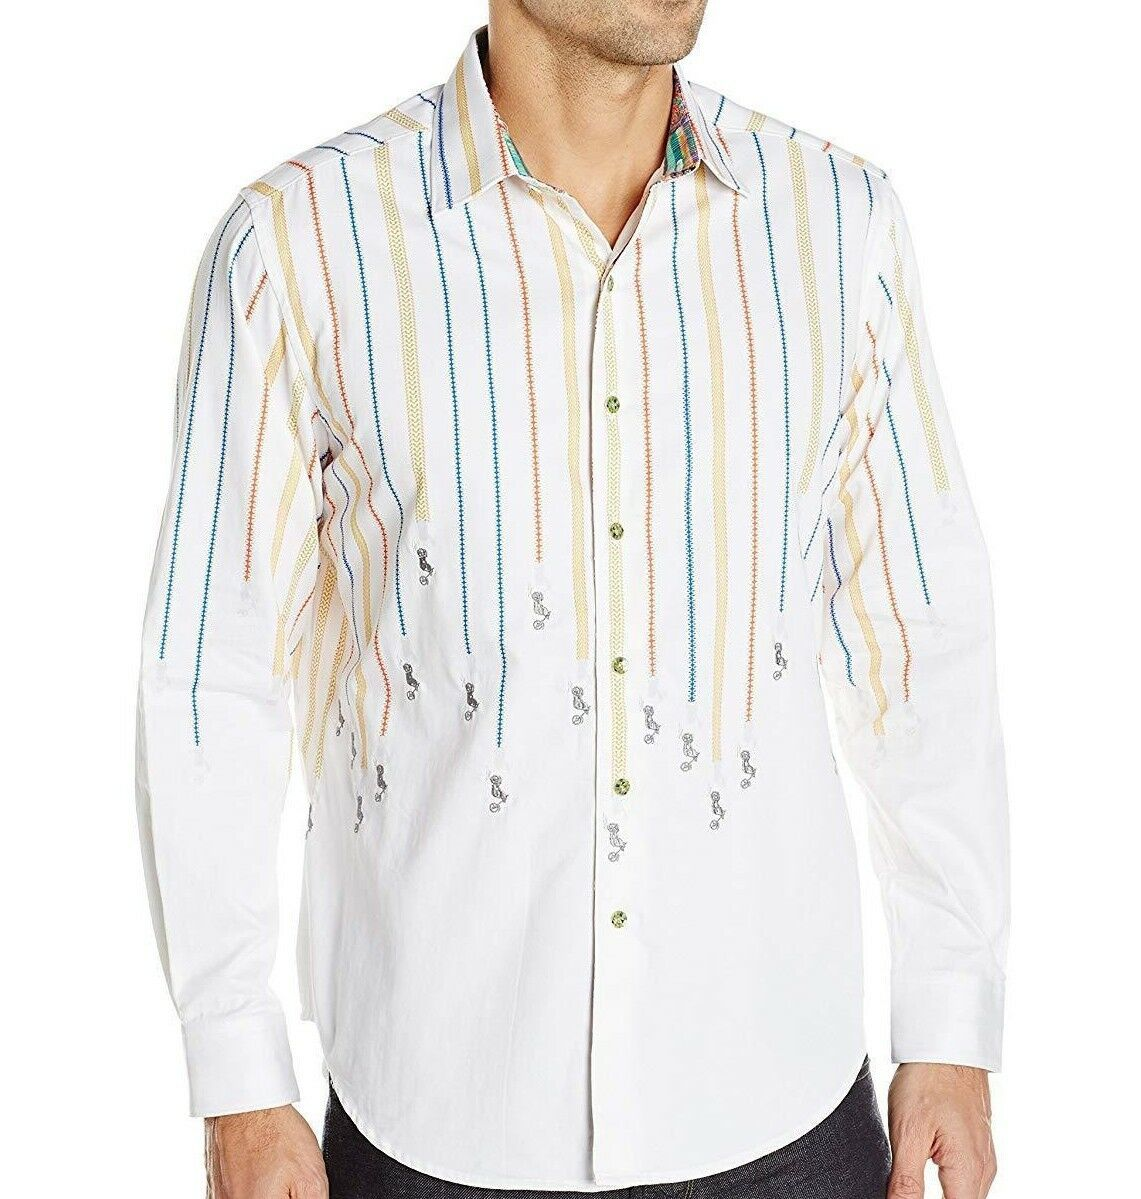 NWT ROBERT GRAHAM SzL MOTO RALLY CLASSIC FIT SPORT LONG SLEEVE SHIRT WHITE